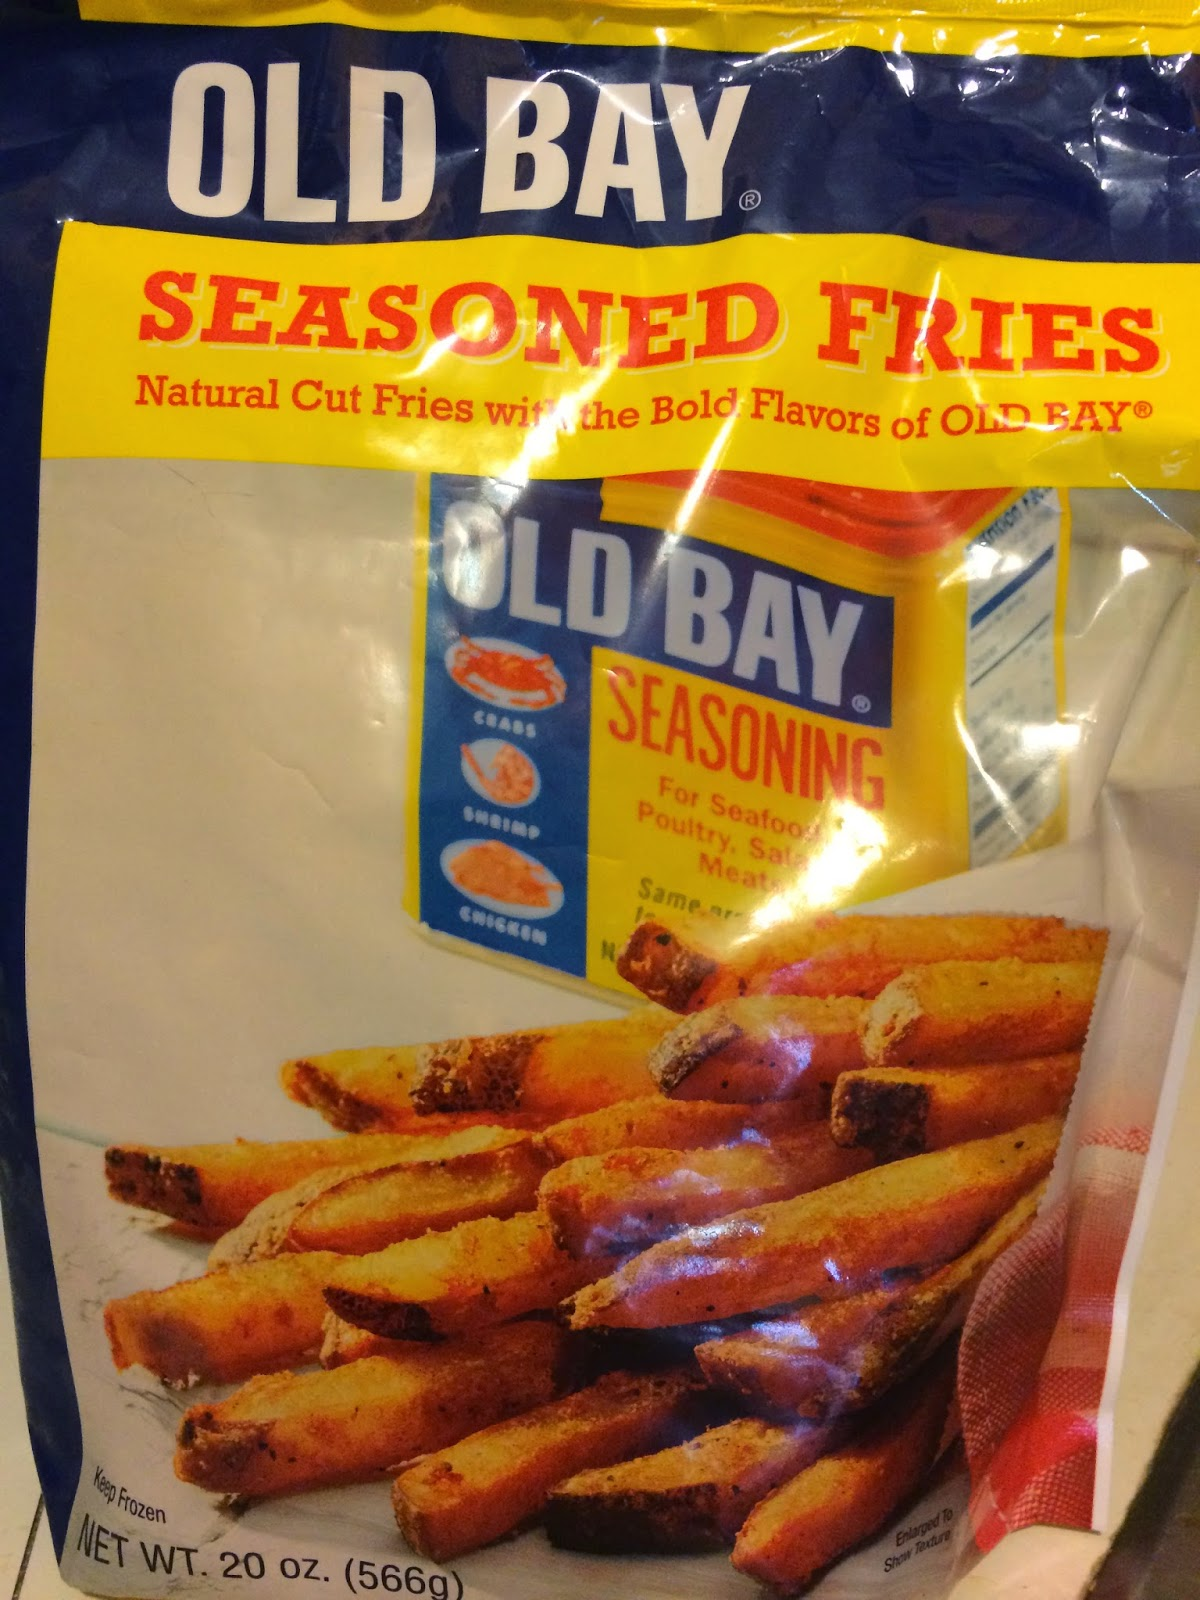 French Fry Diary: French Fry Diary 617: Old Bay Seasoned Fries